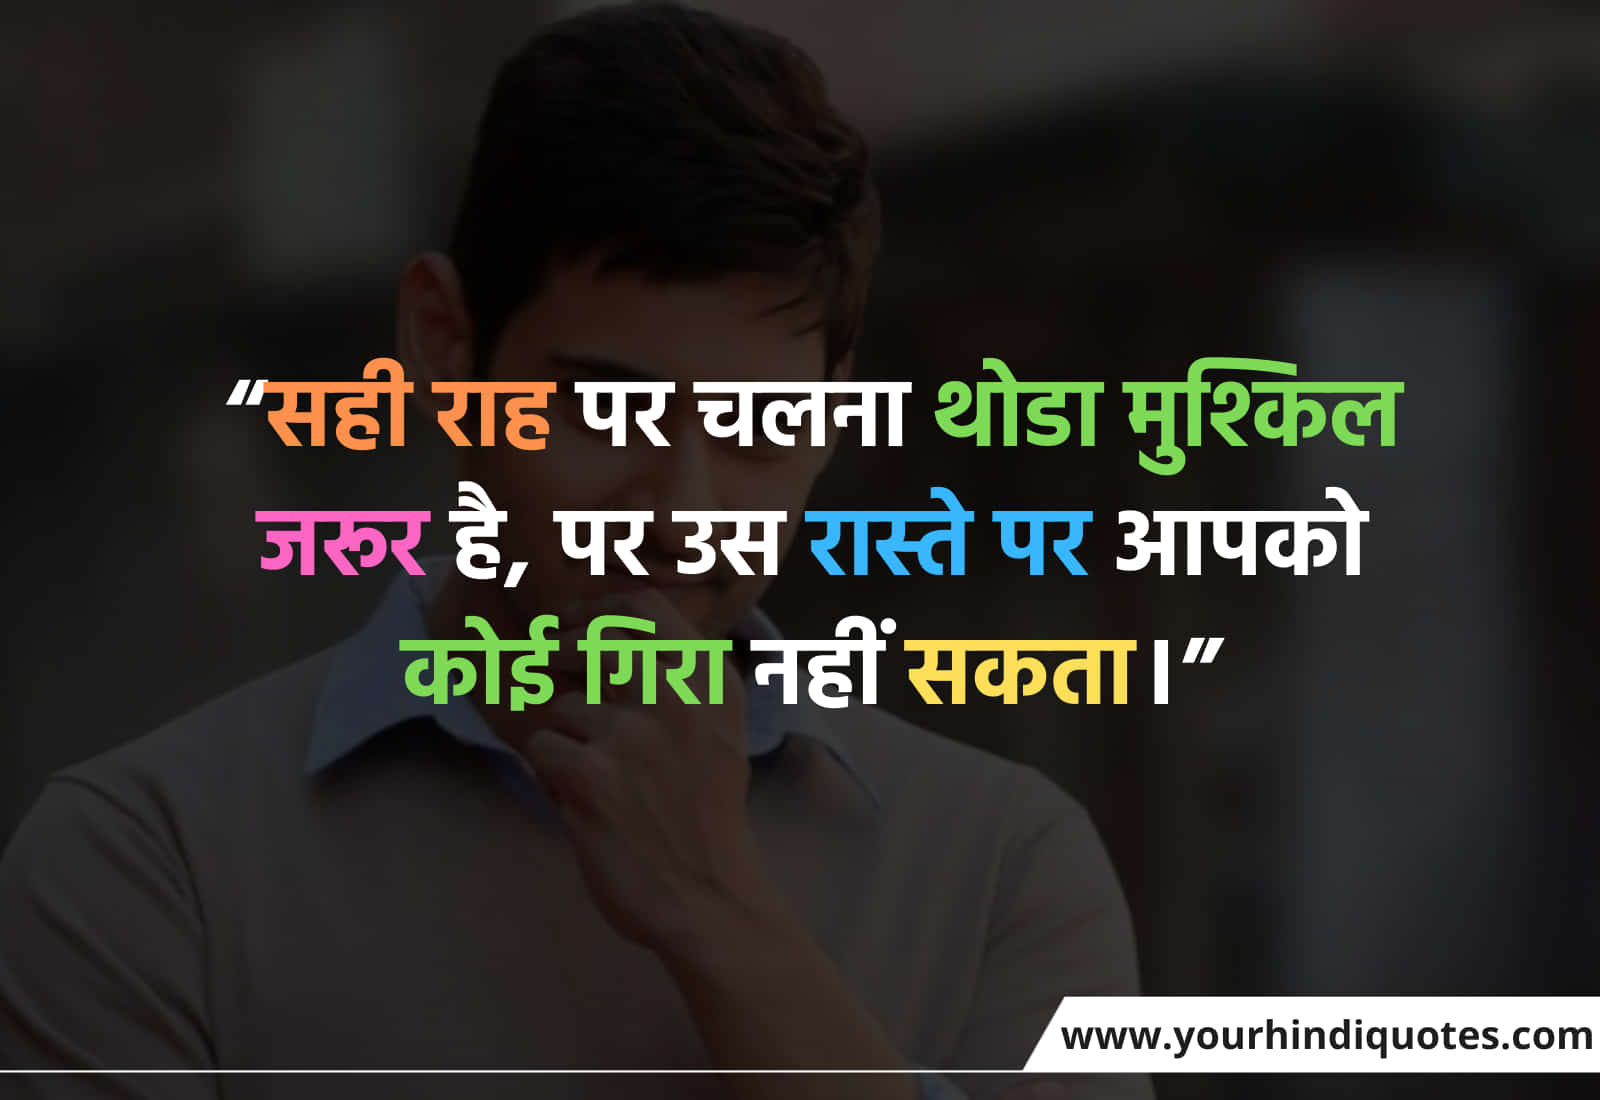 Inspiring Thought Of The Day